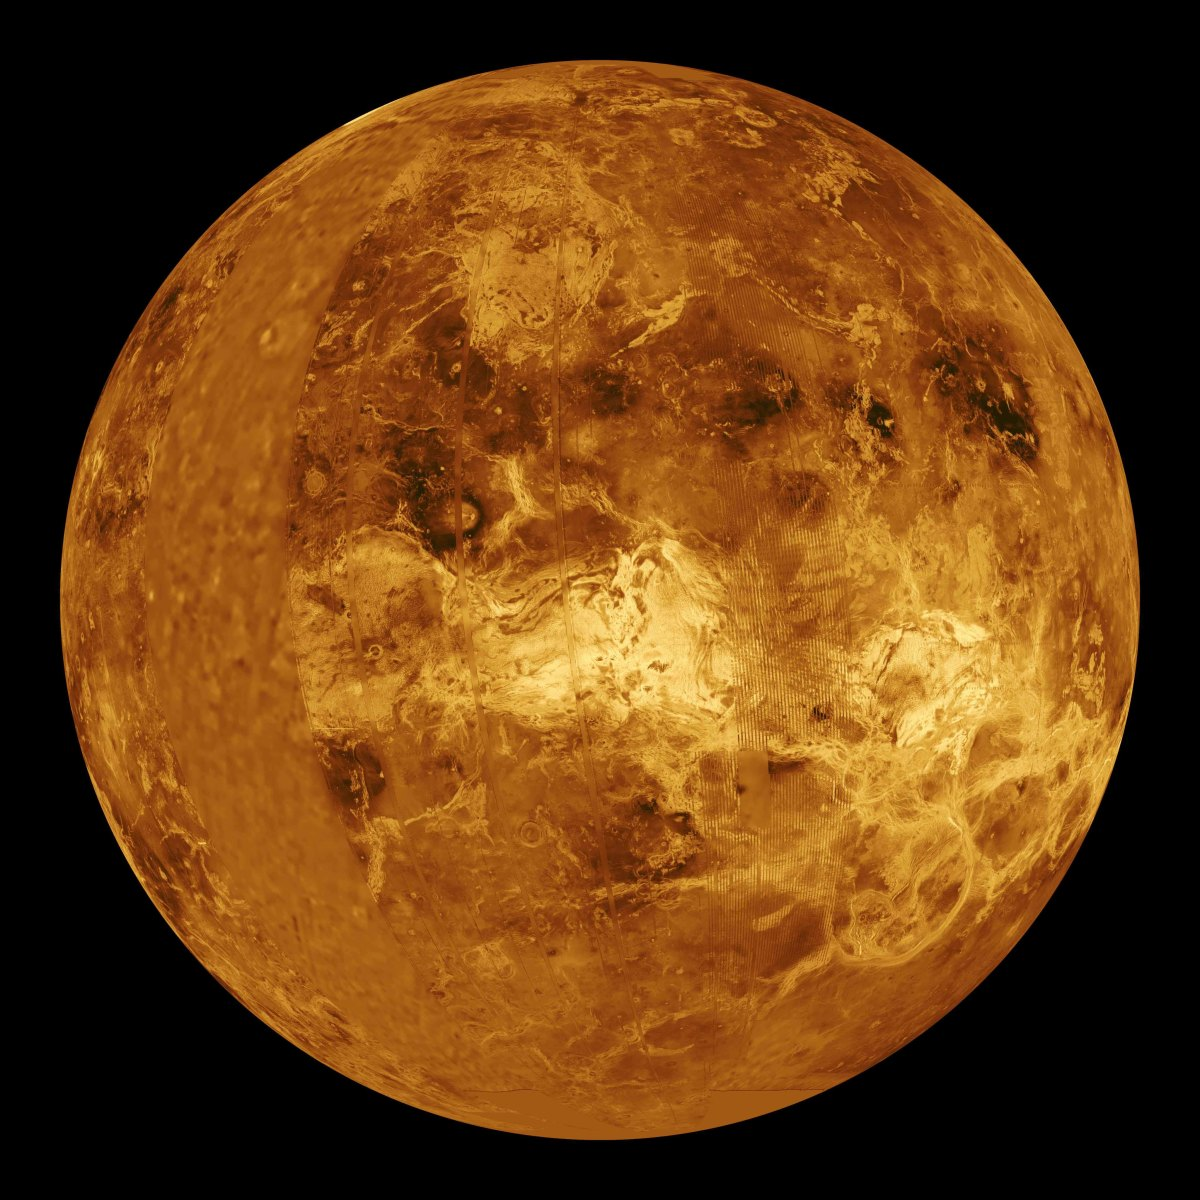 Astronomy; The Geology, Climatology and History of Planet Venus